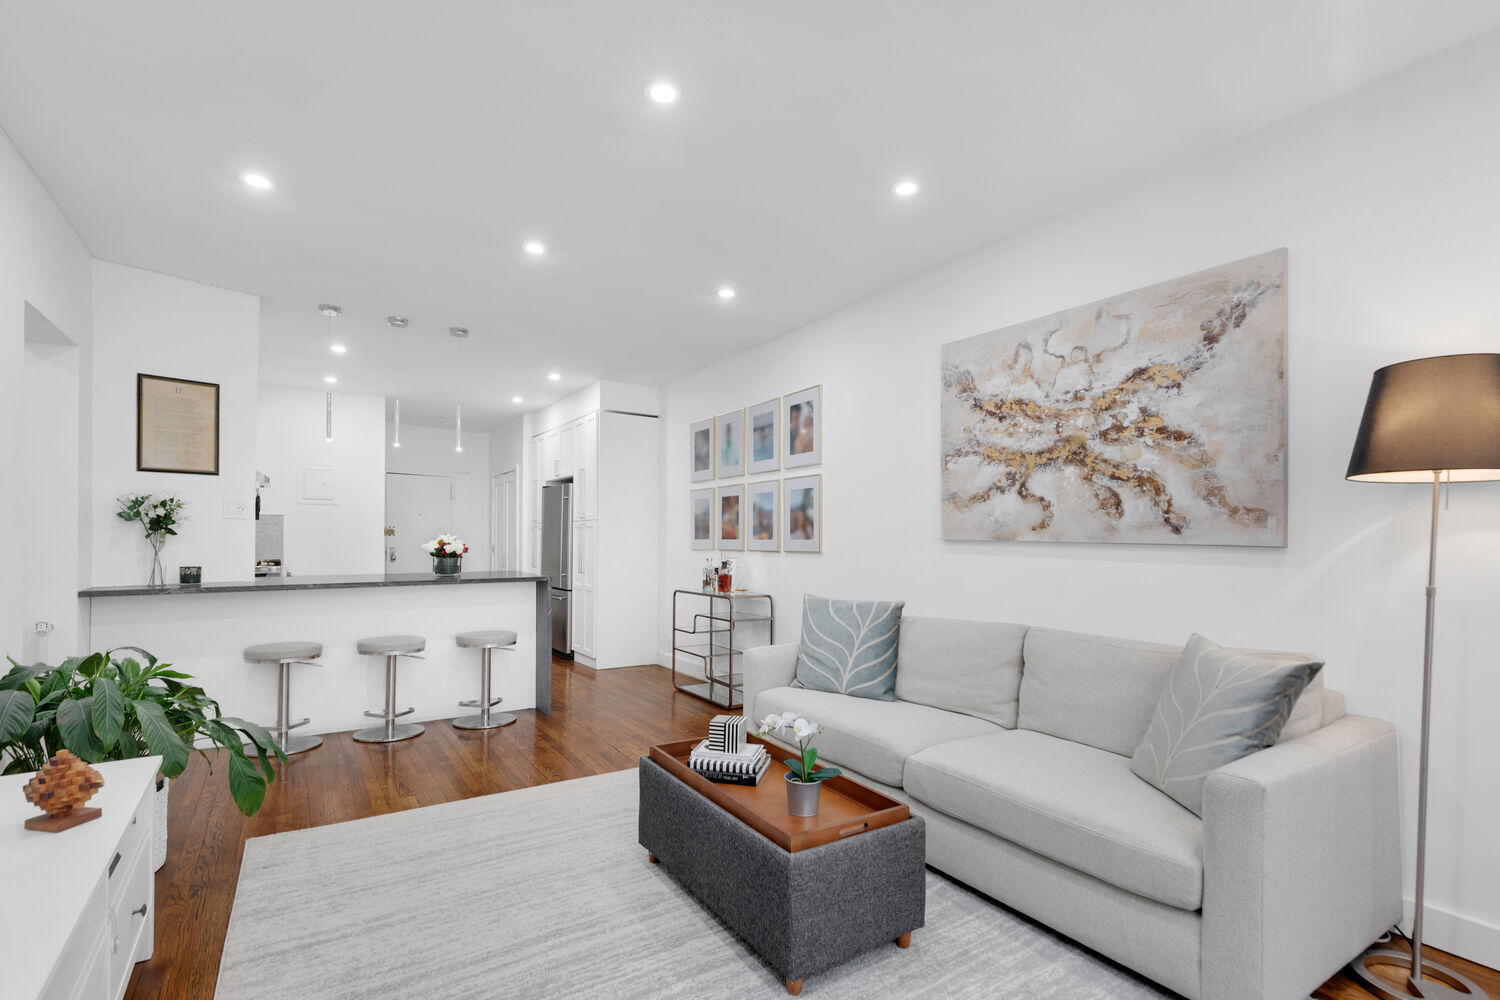 Apartment for sale at 304 East 73rd Street, Apt 4-CD